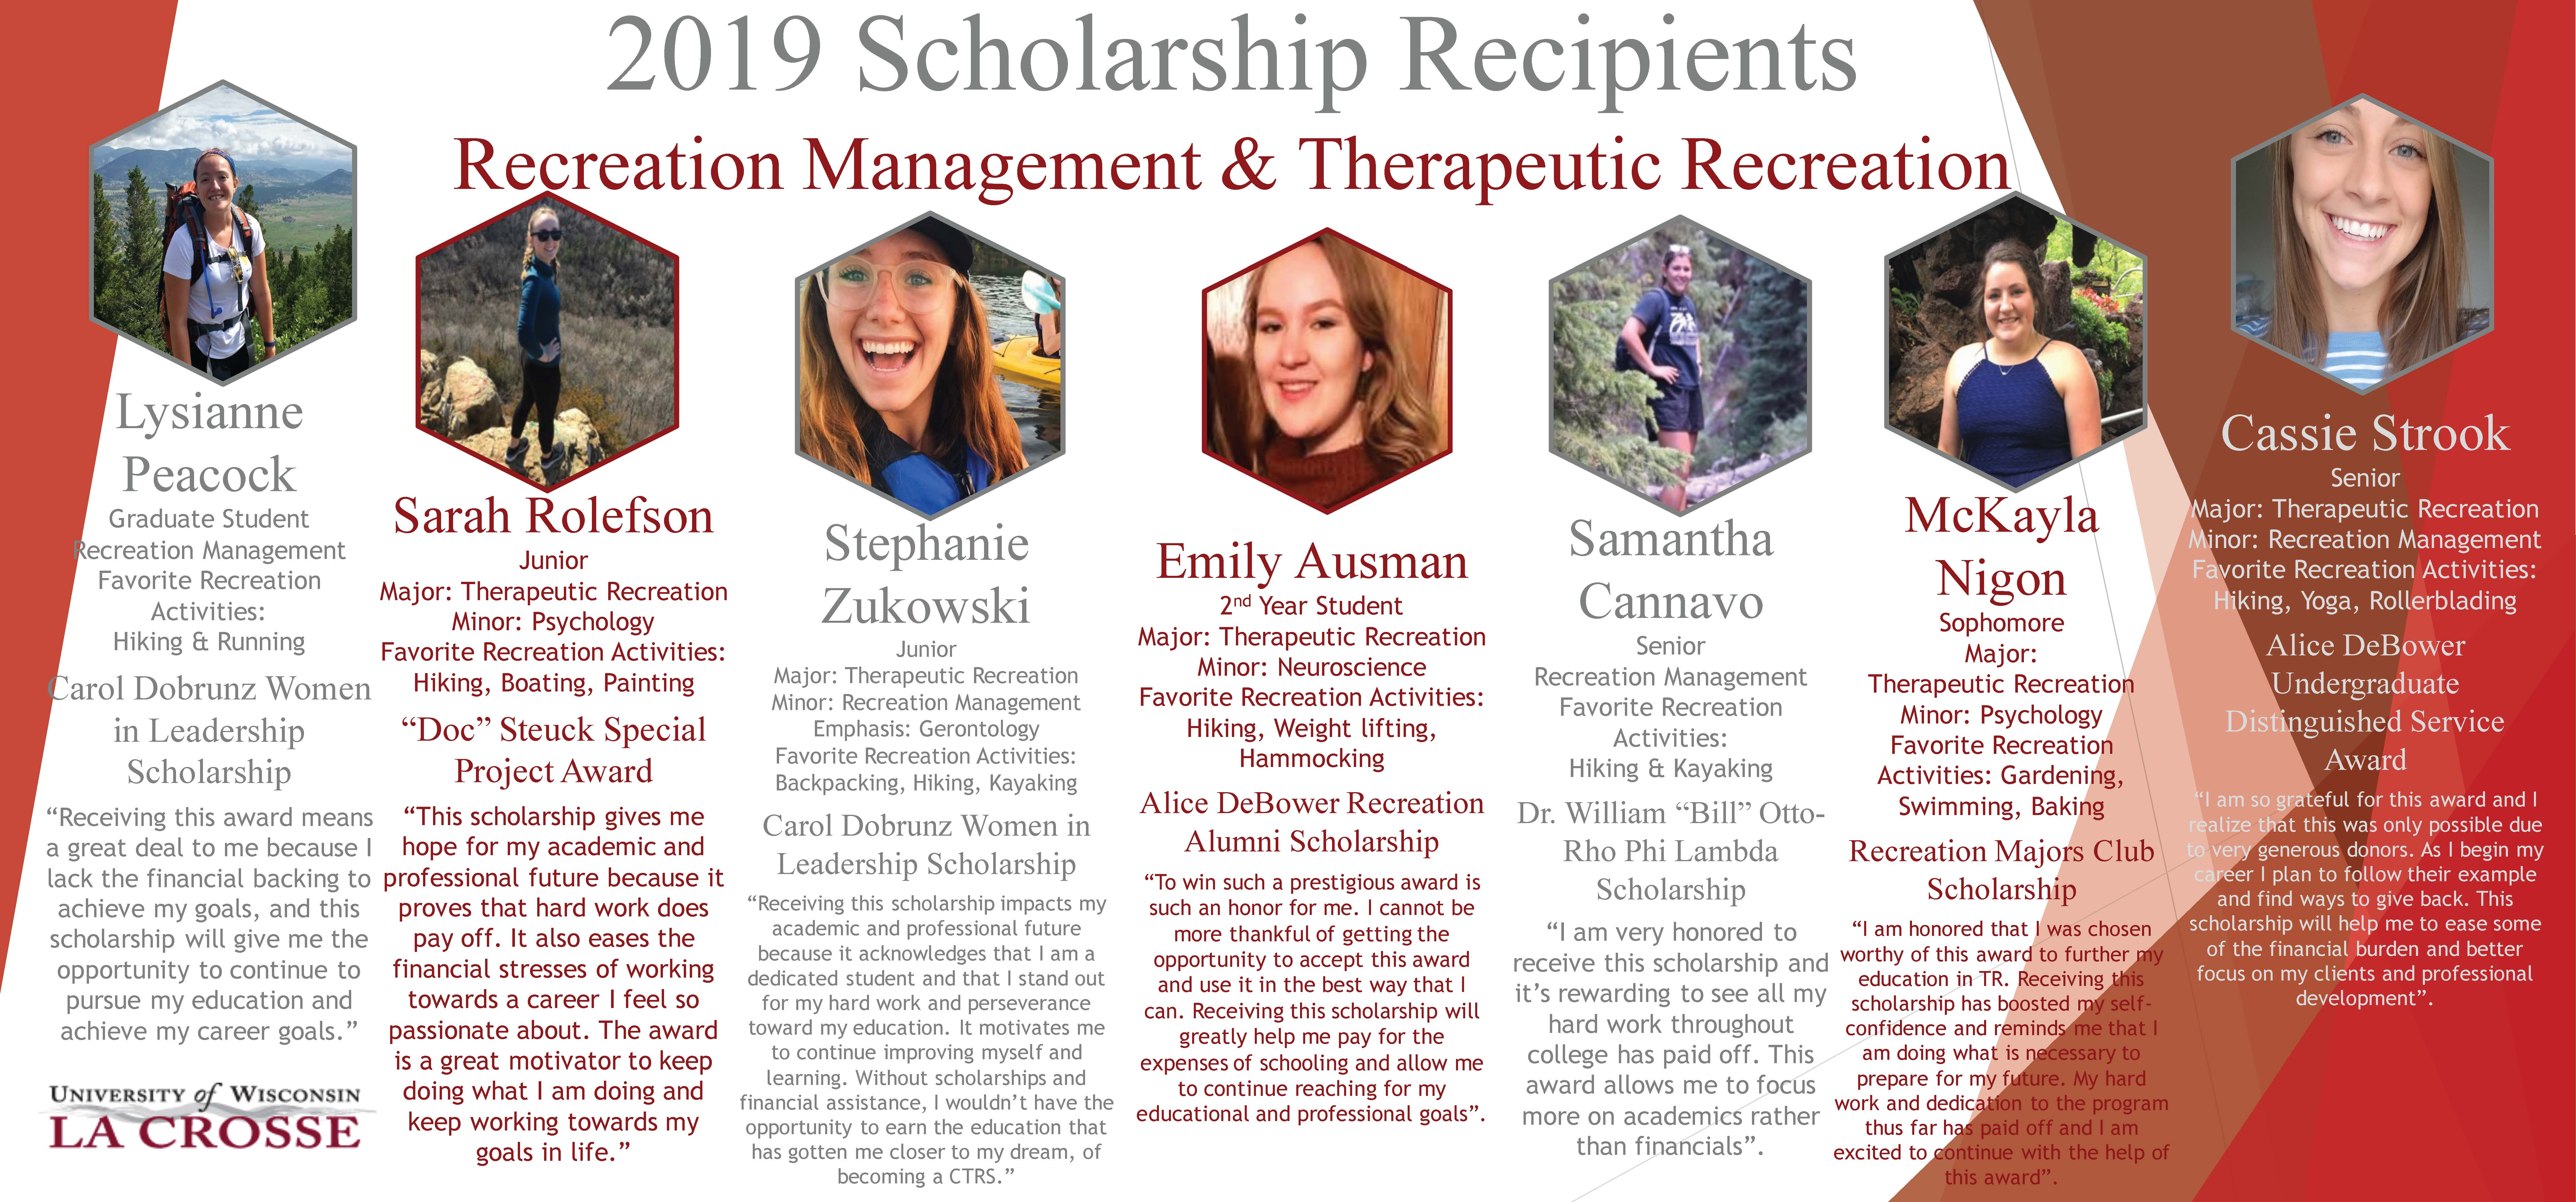 Seven RMTR students who received 2019 scholarships.